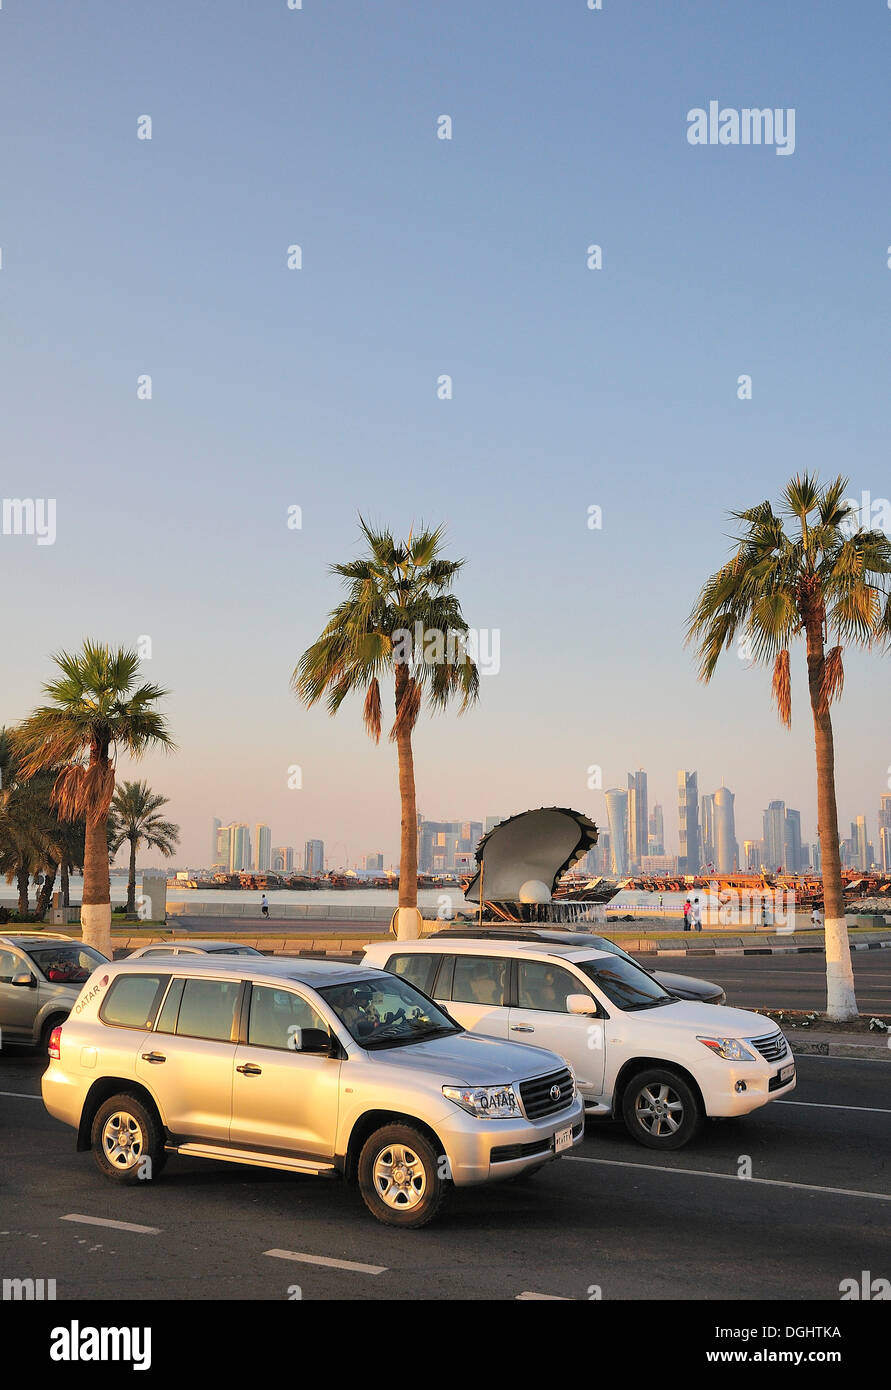 All-terrain vehicles on the Corniche in front of the Pearl and Oyster Fountain, Doha, Qatar, Middle East - Stock Image